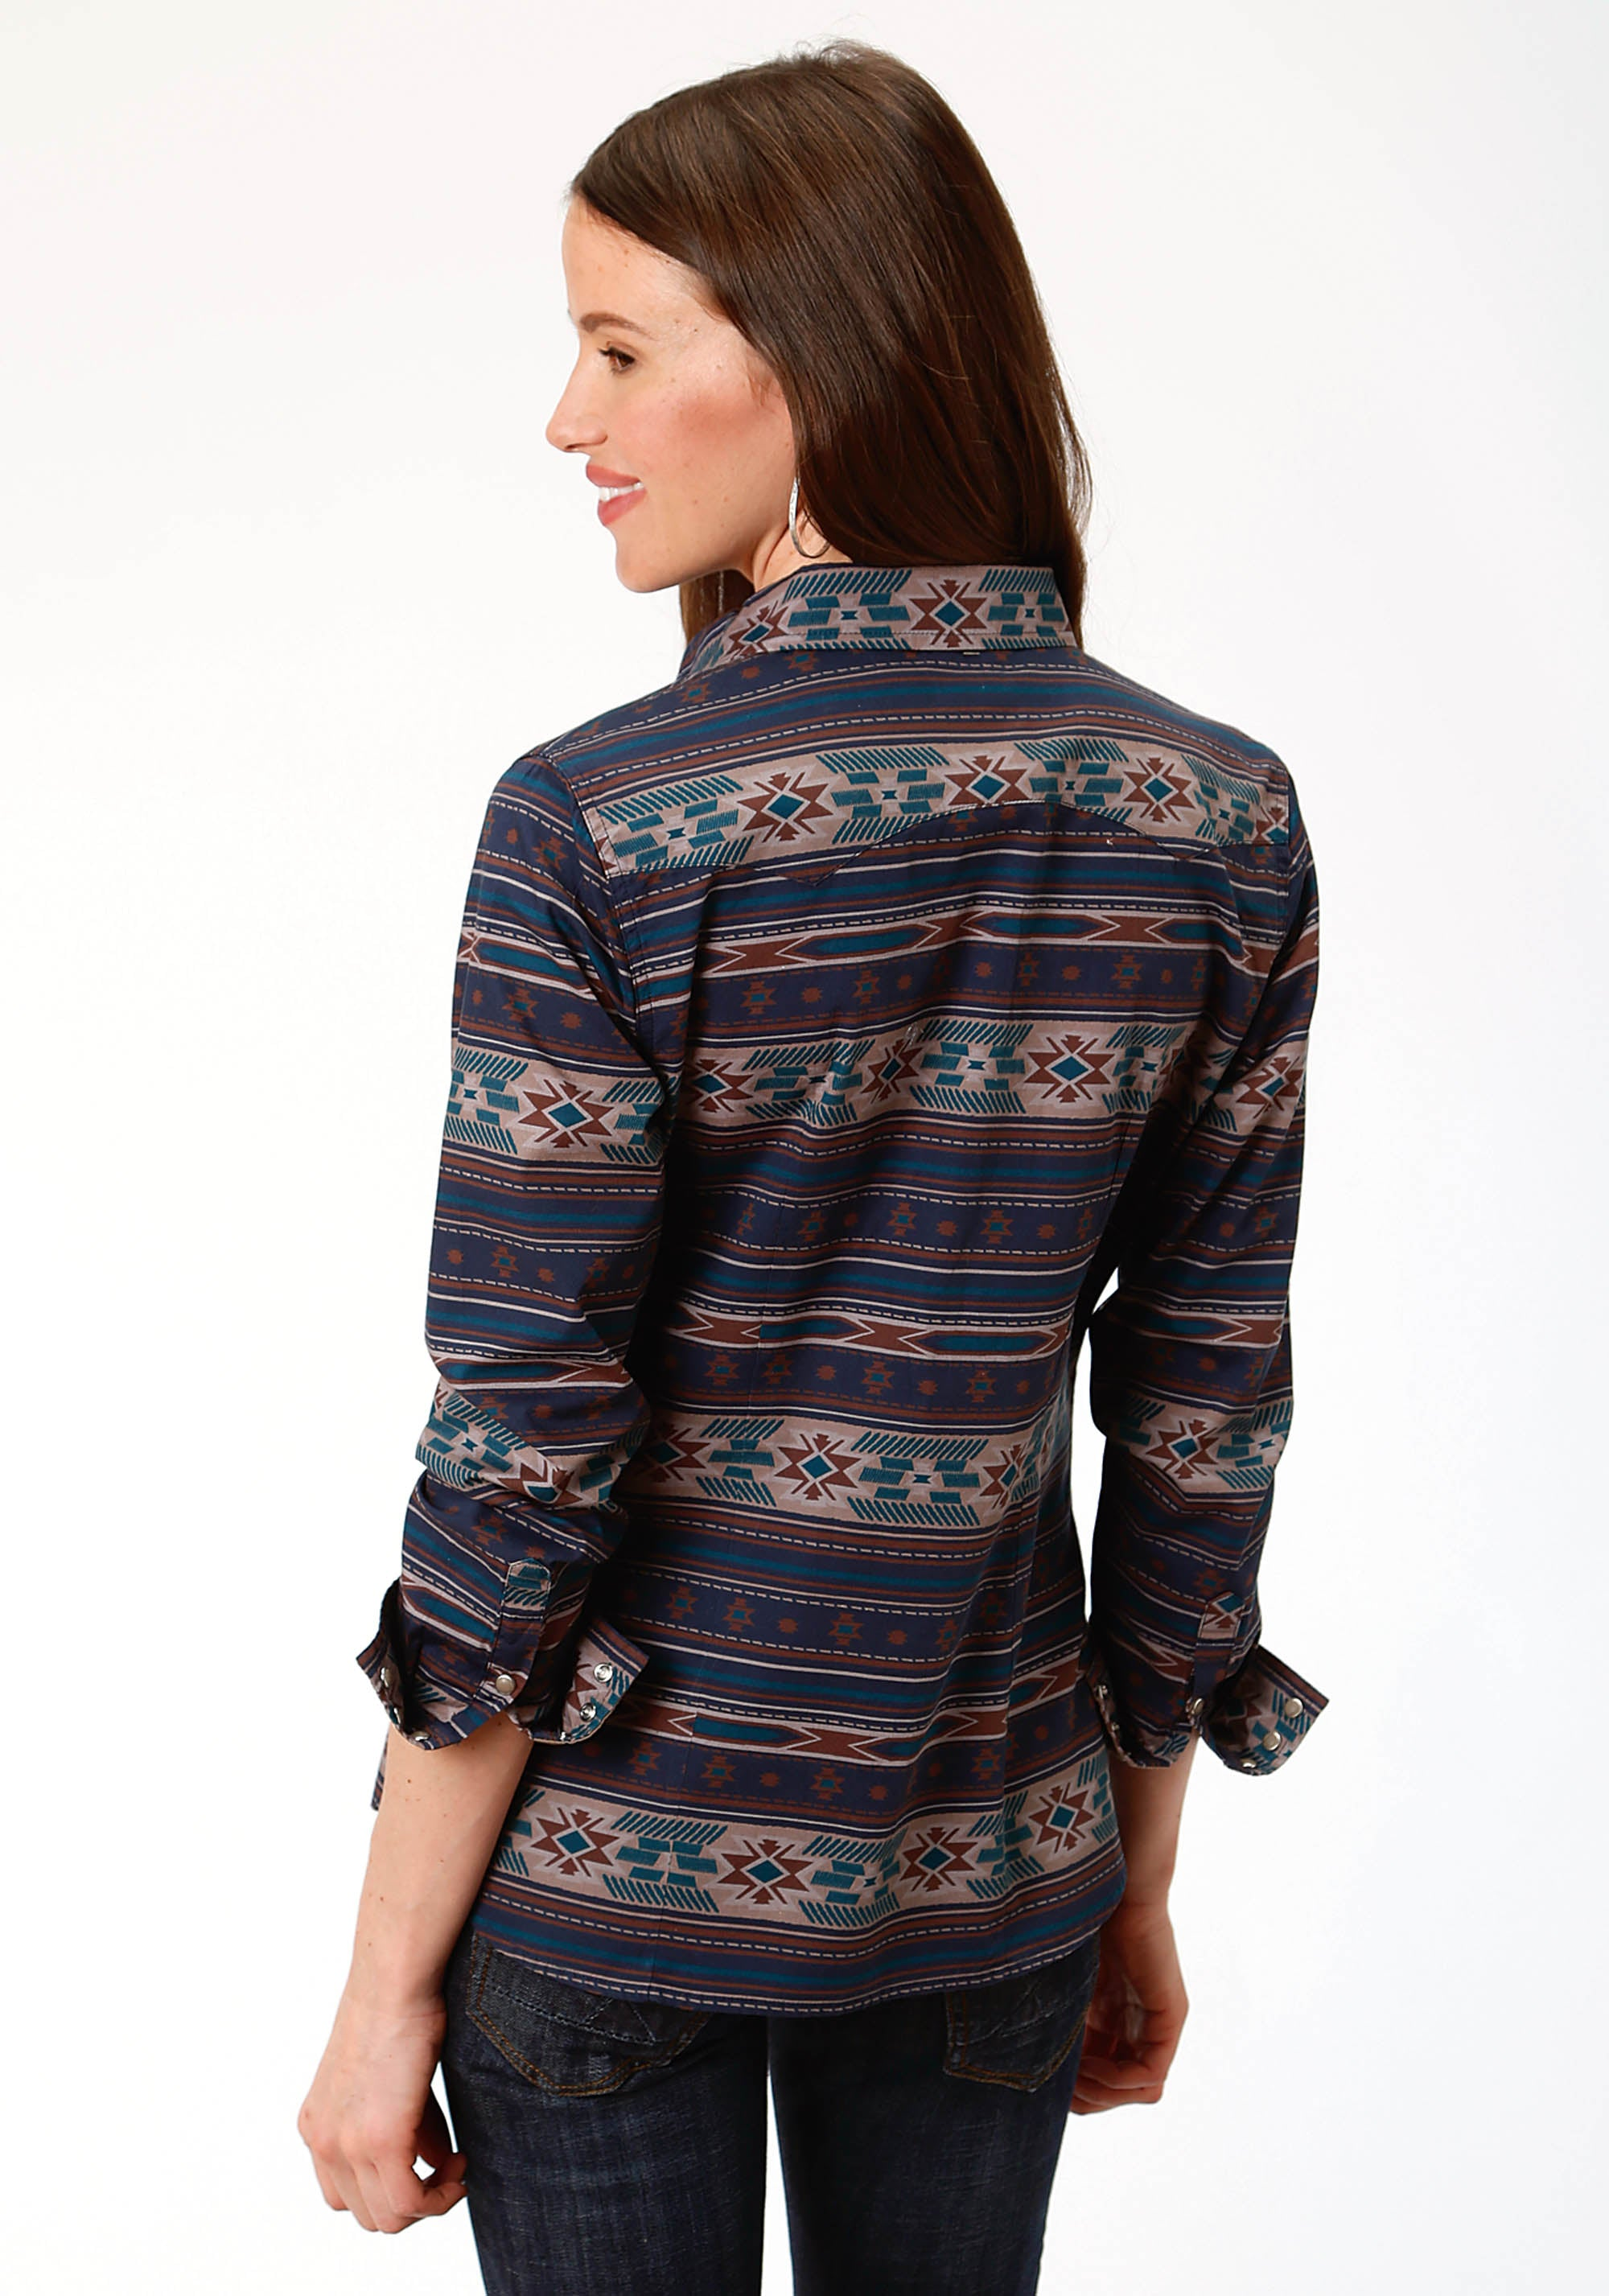 ROPER WOMENS BLUE 0800 CLOUDY SUNSET PRINT WEST MADE COLLECTION LONG SLEEVE